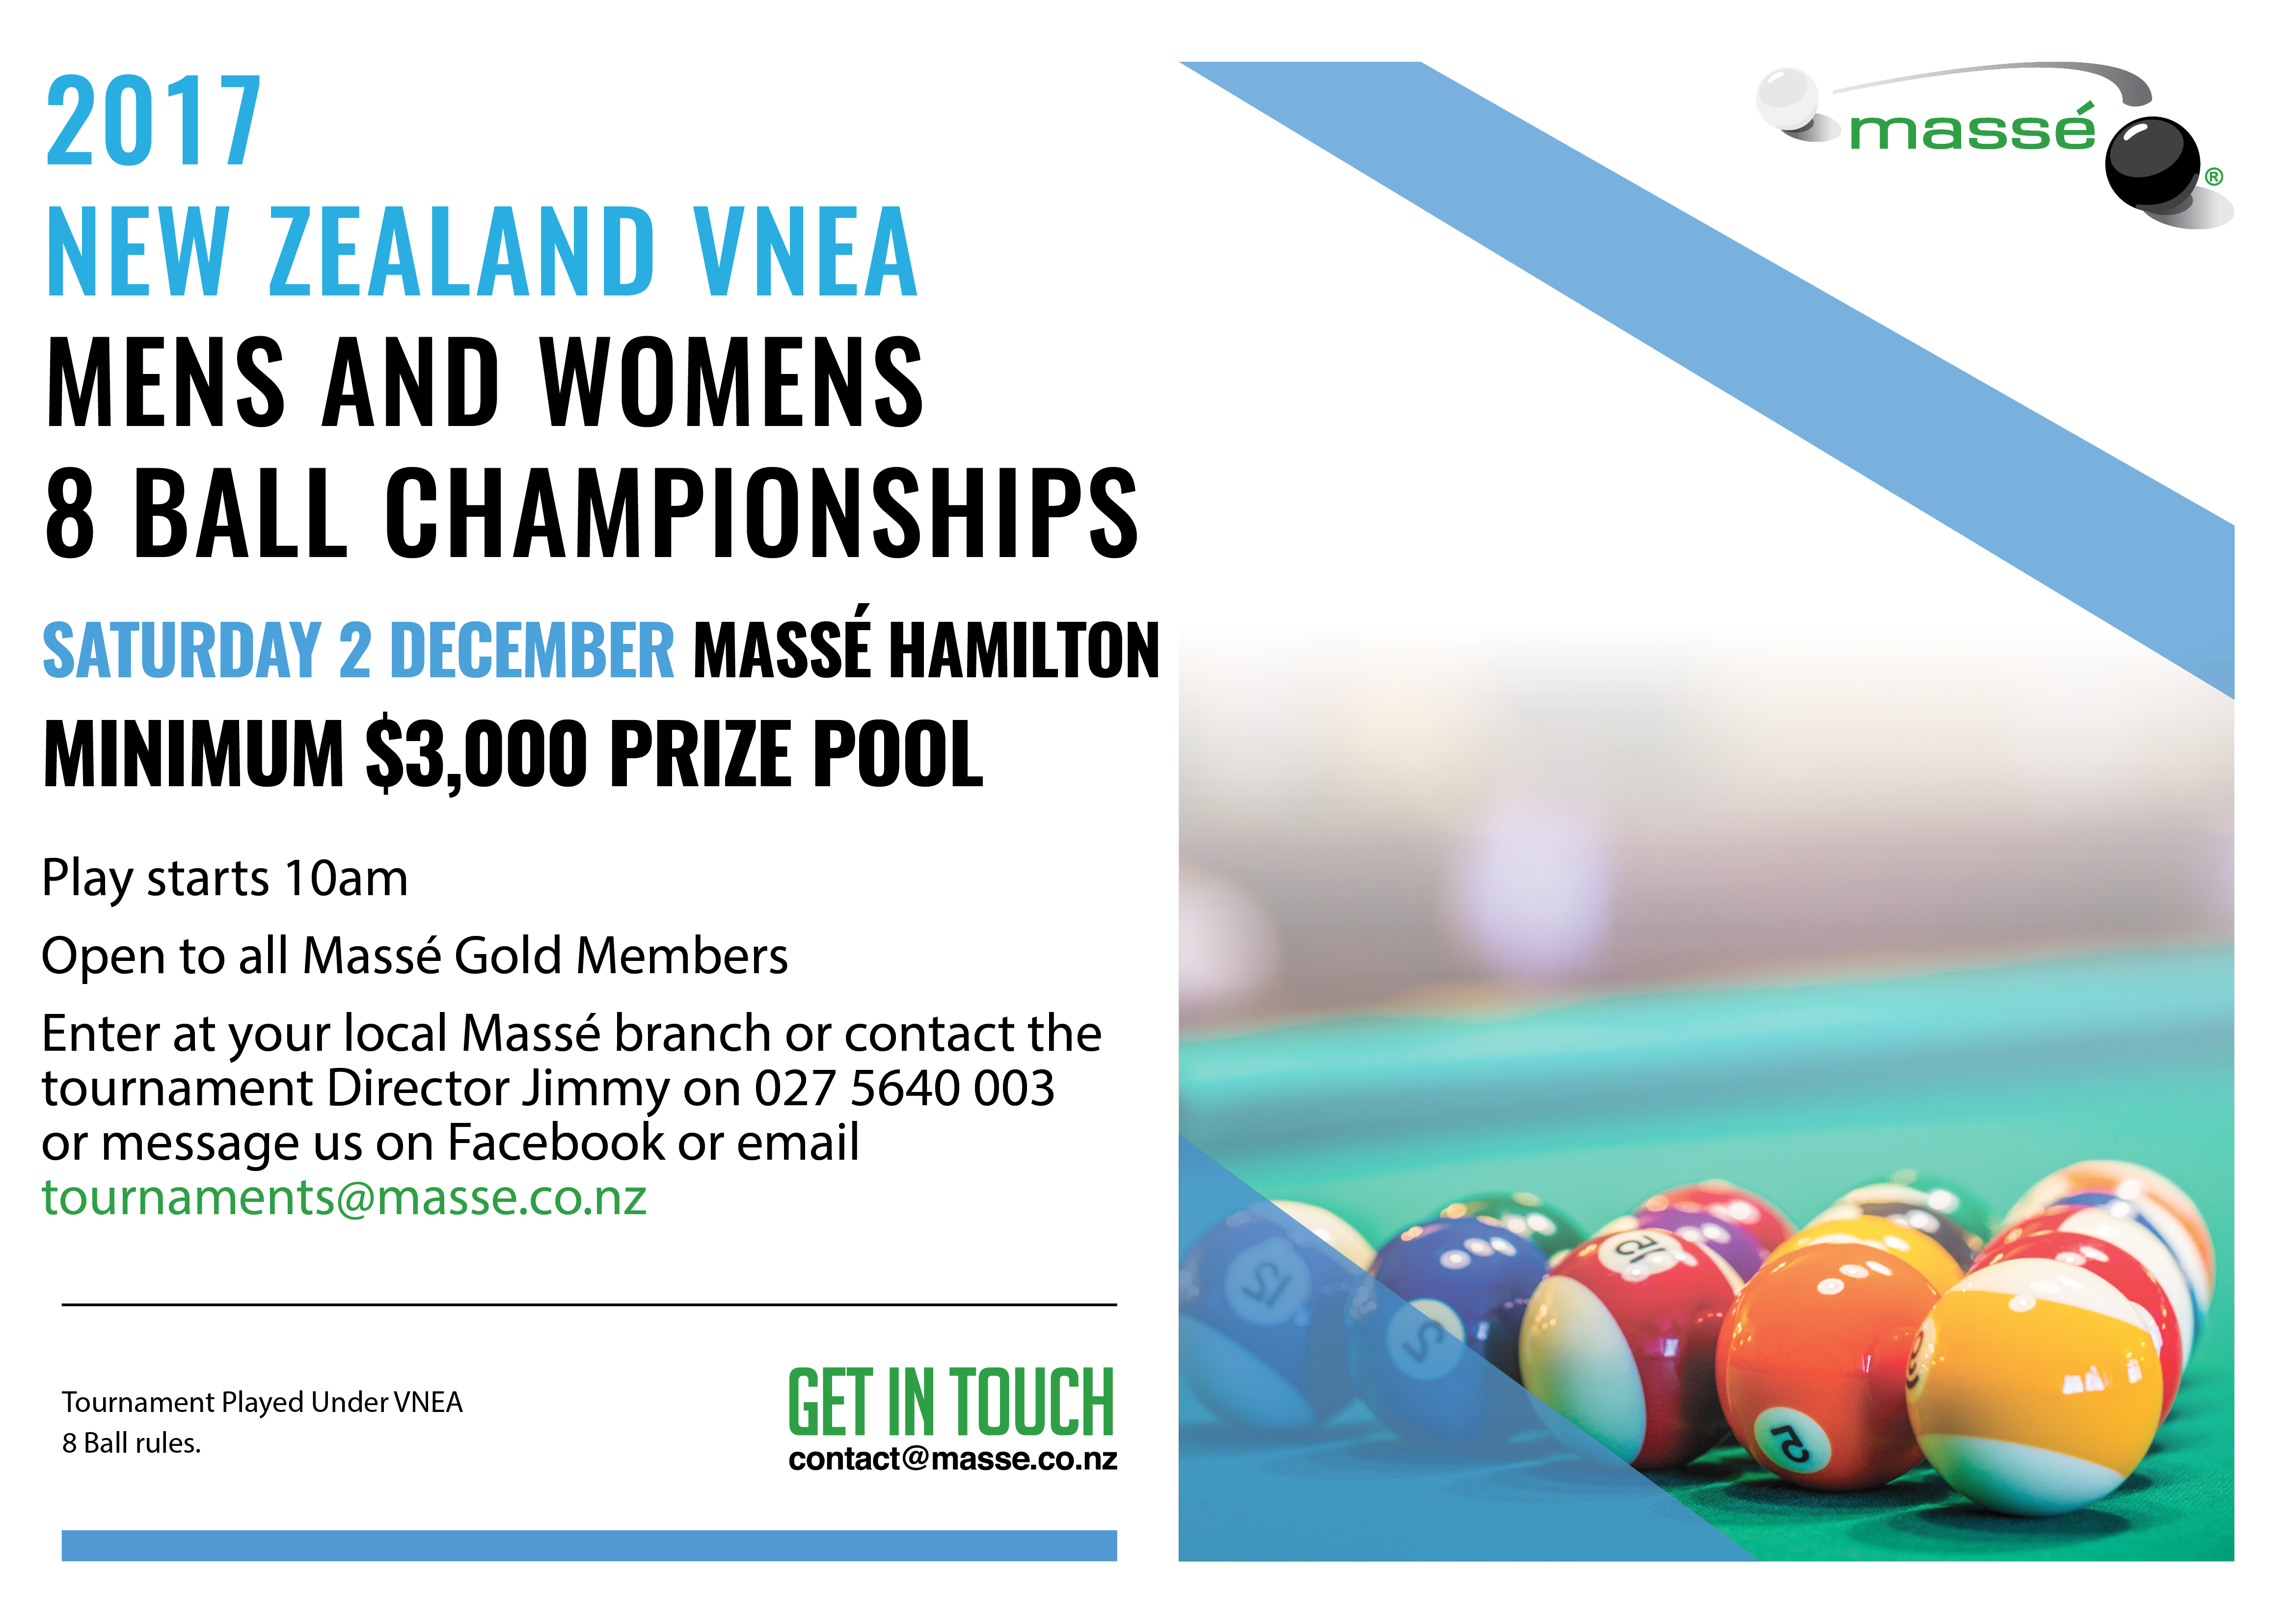 New Zealand VNEA 8 Ball Championships Mens & Womens 2017